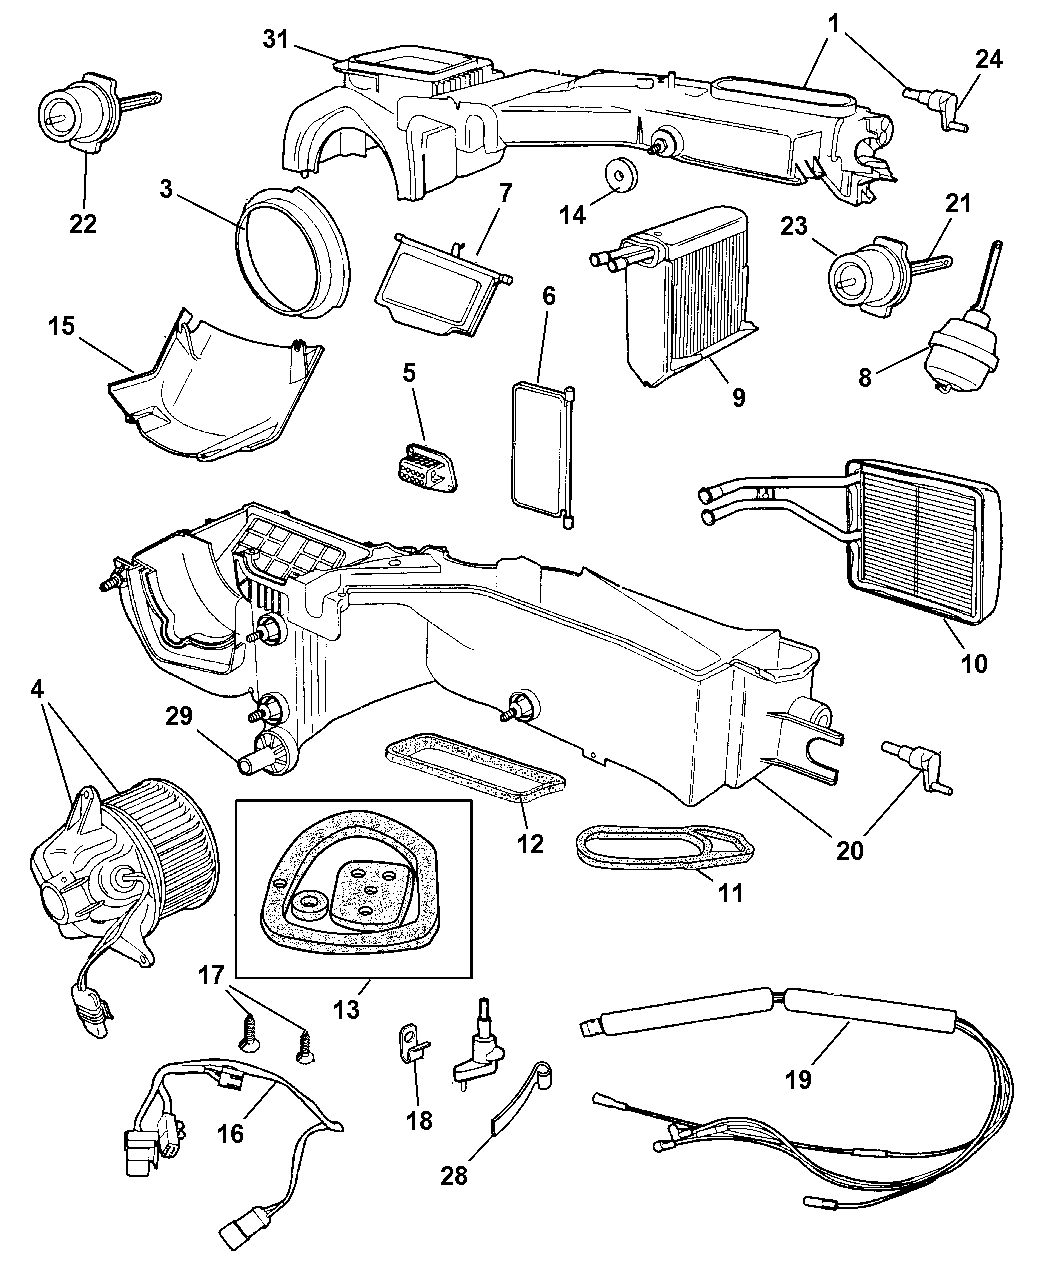 2001 jeep cherokee heater diagram 4874046 - genuine jeep core a/c-heater 97 99 jeep cherokee heater diagram